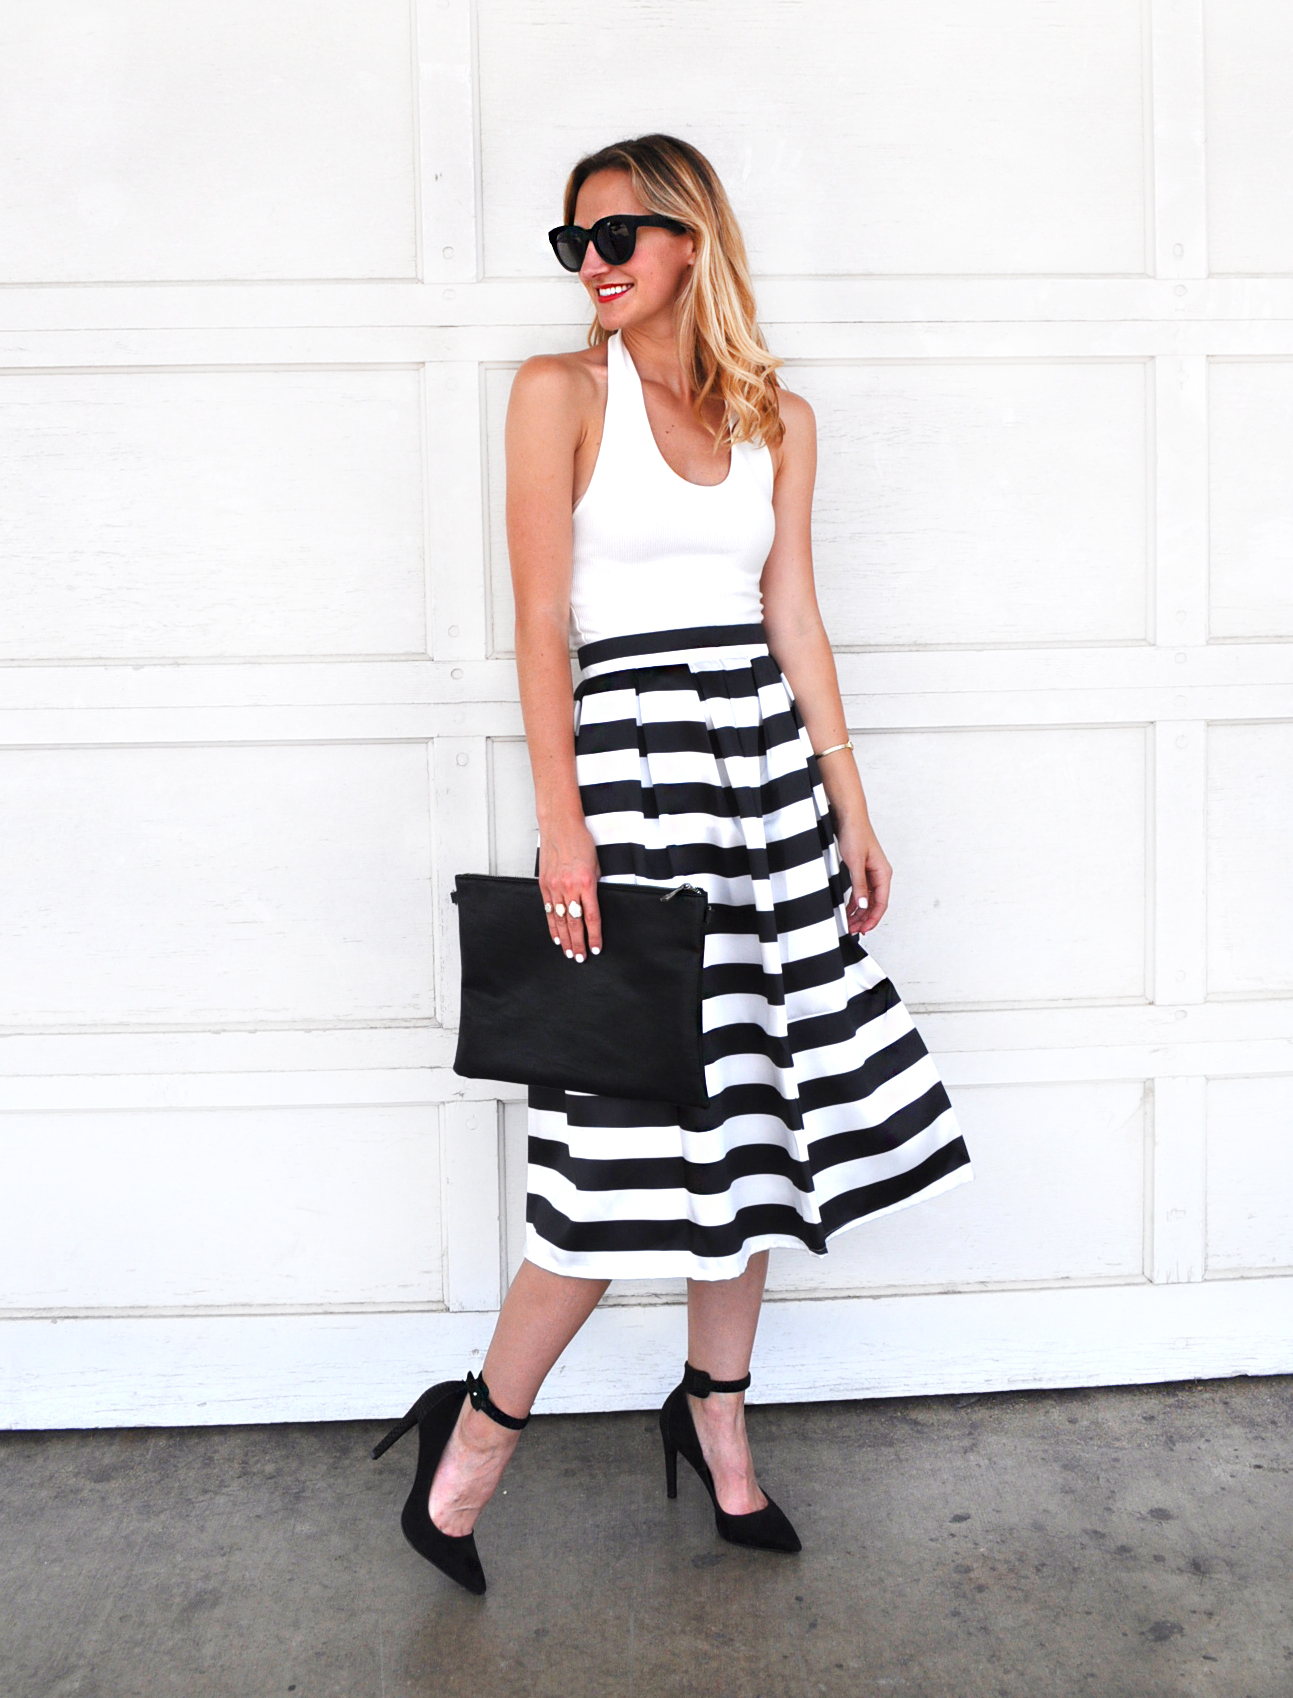 livvyland-blog-olivia-watson-austin-texas-fashion-blogger-chicwish-striped-tea-length-skirt-high-waist-black-white-topshop-white-halter-top-4